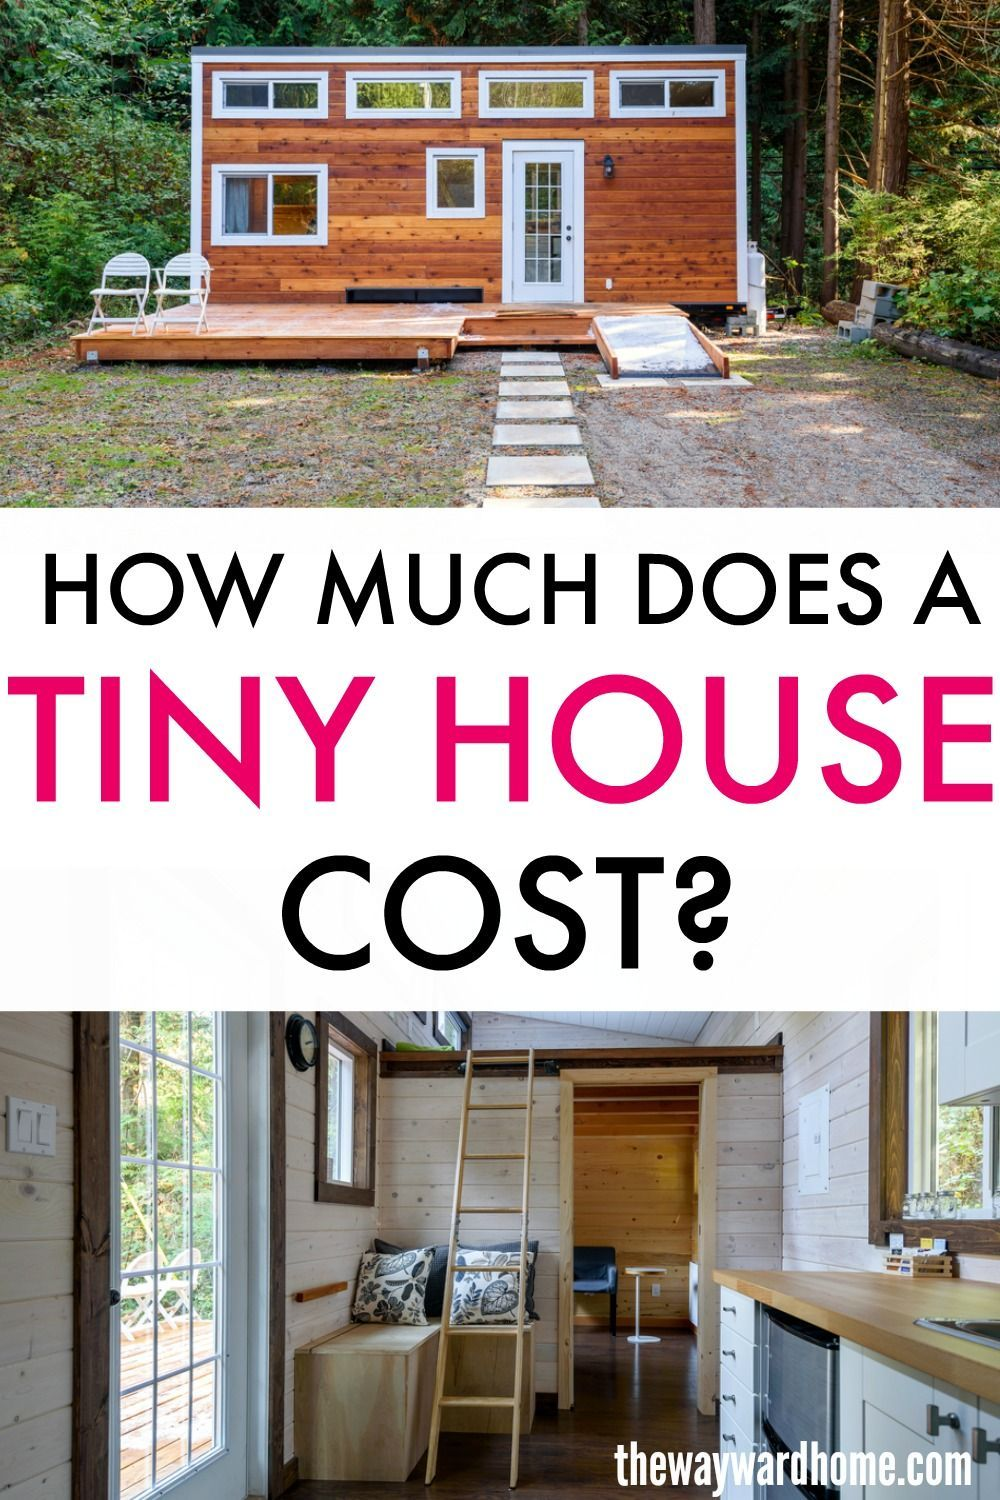 How Much Does A Tiny House Cost Tiny Home Cost House Cost